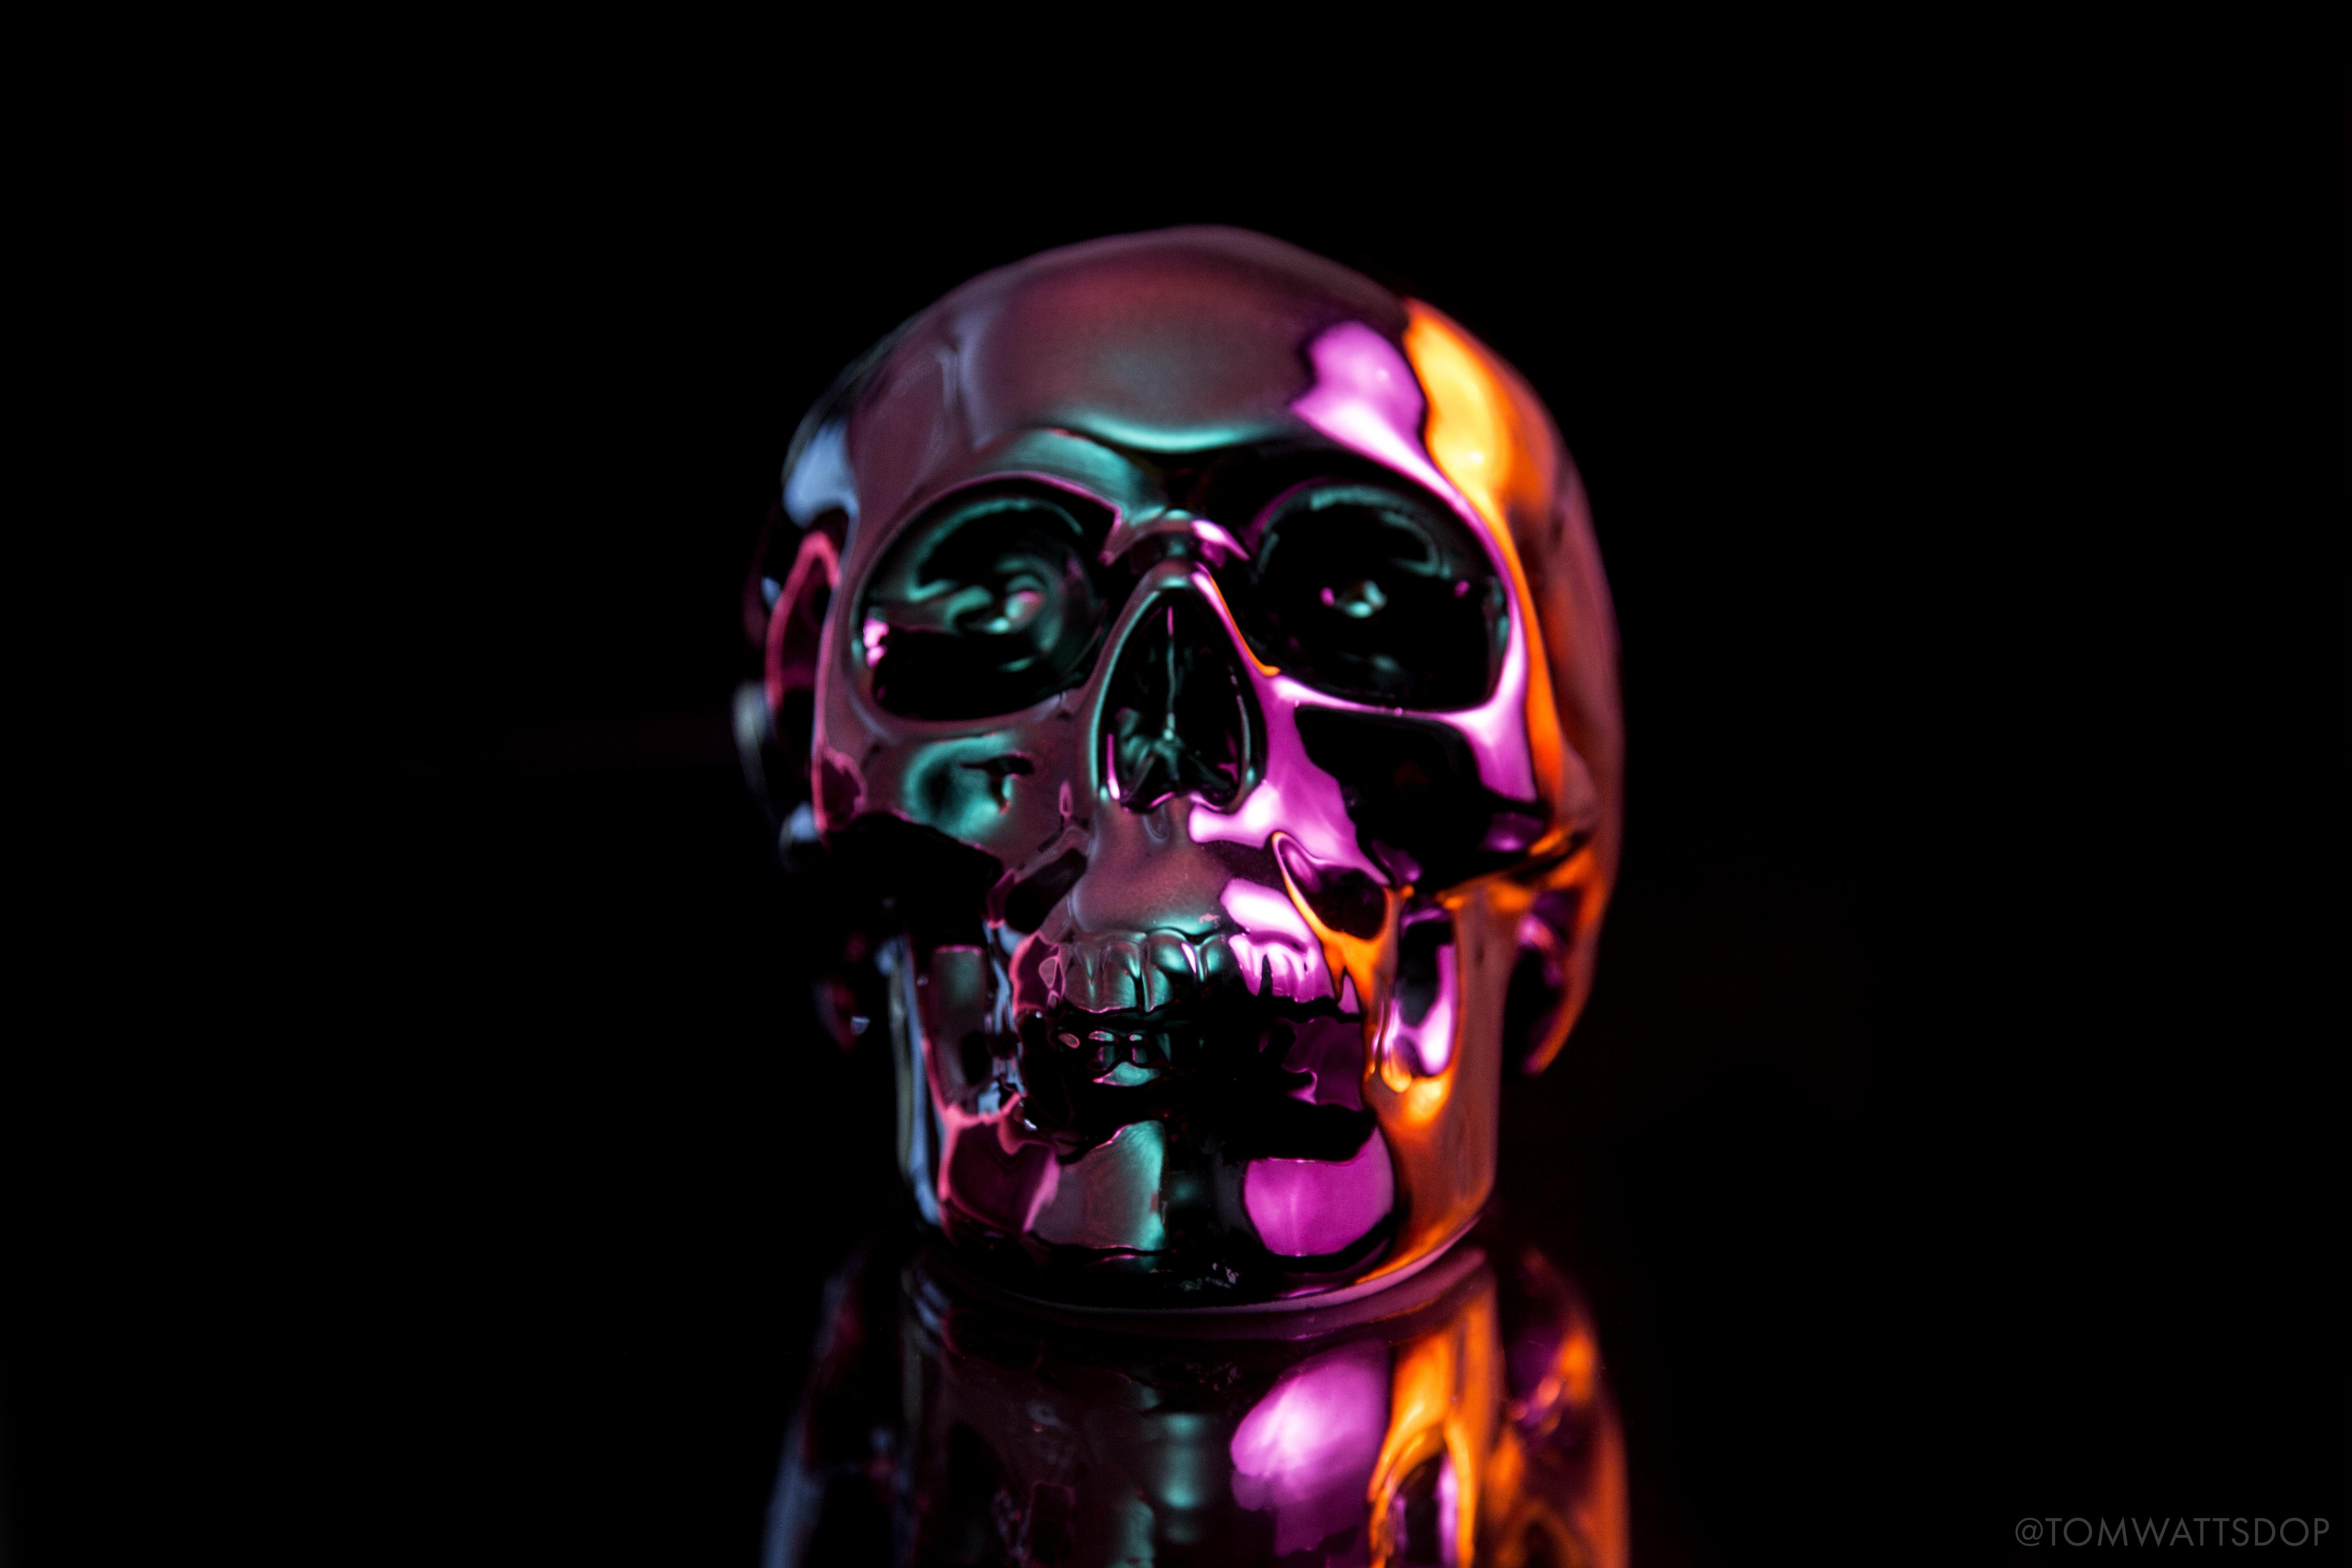 Oil Slick Skull wallpaper